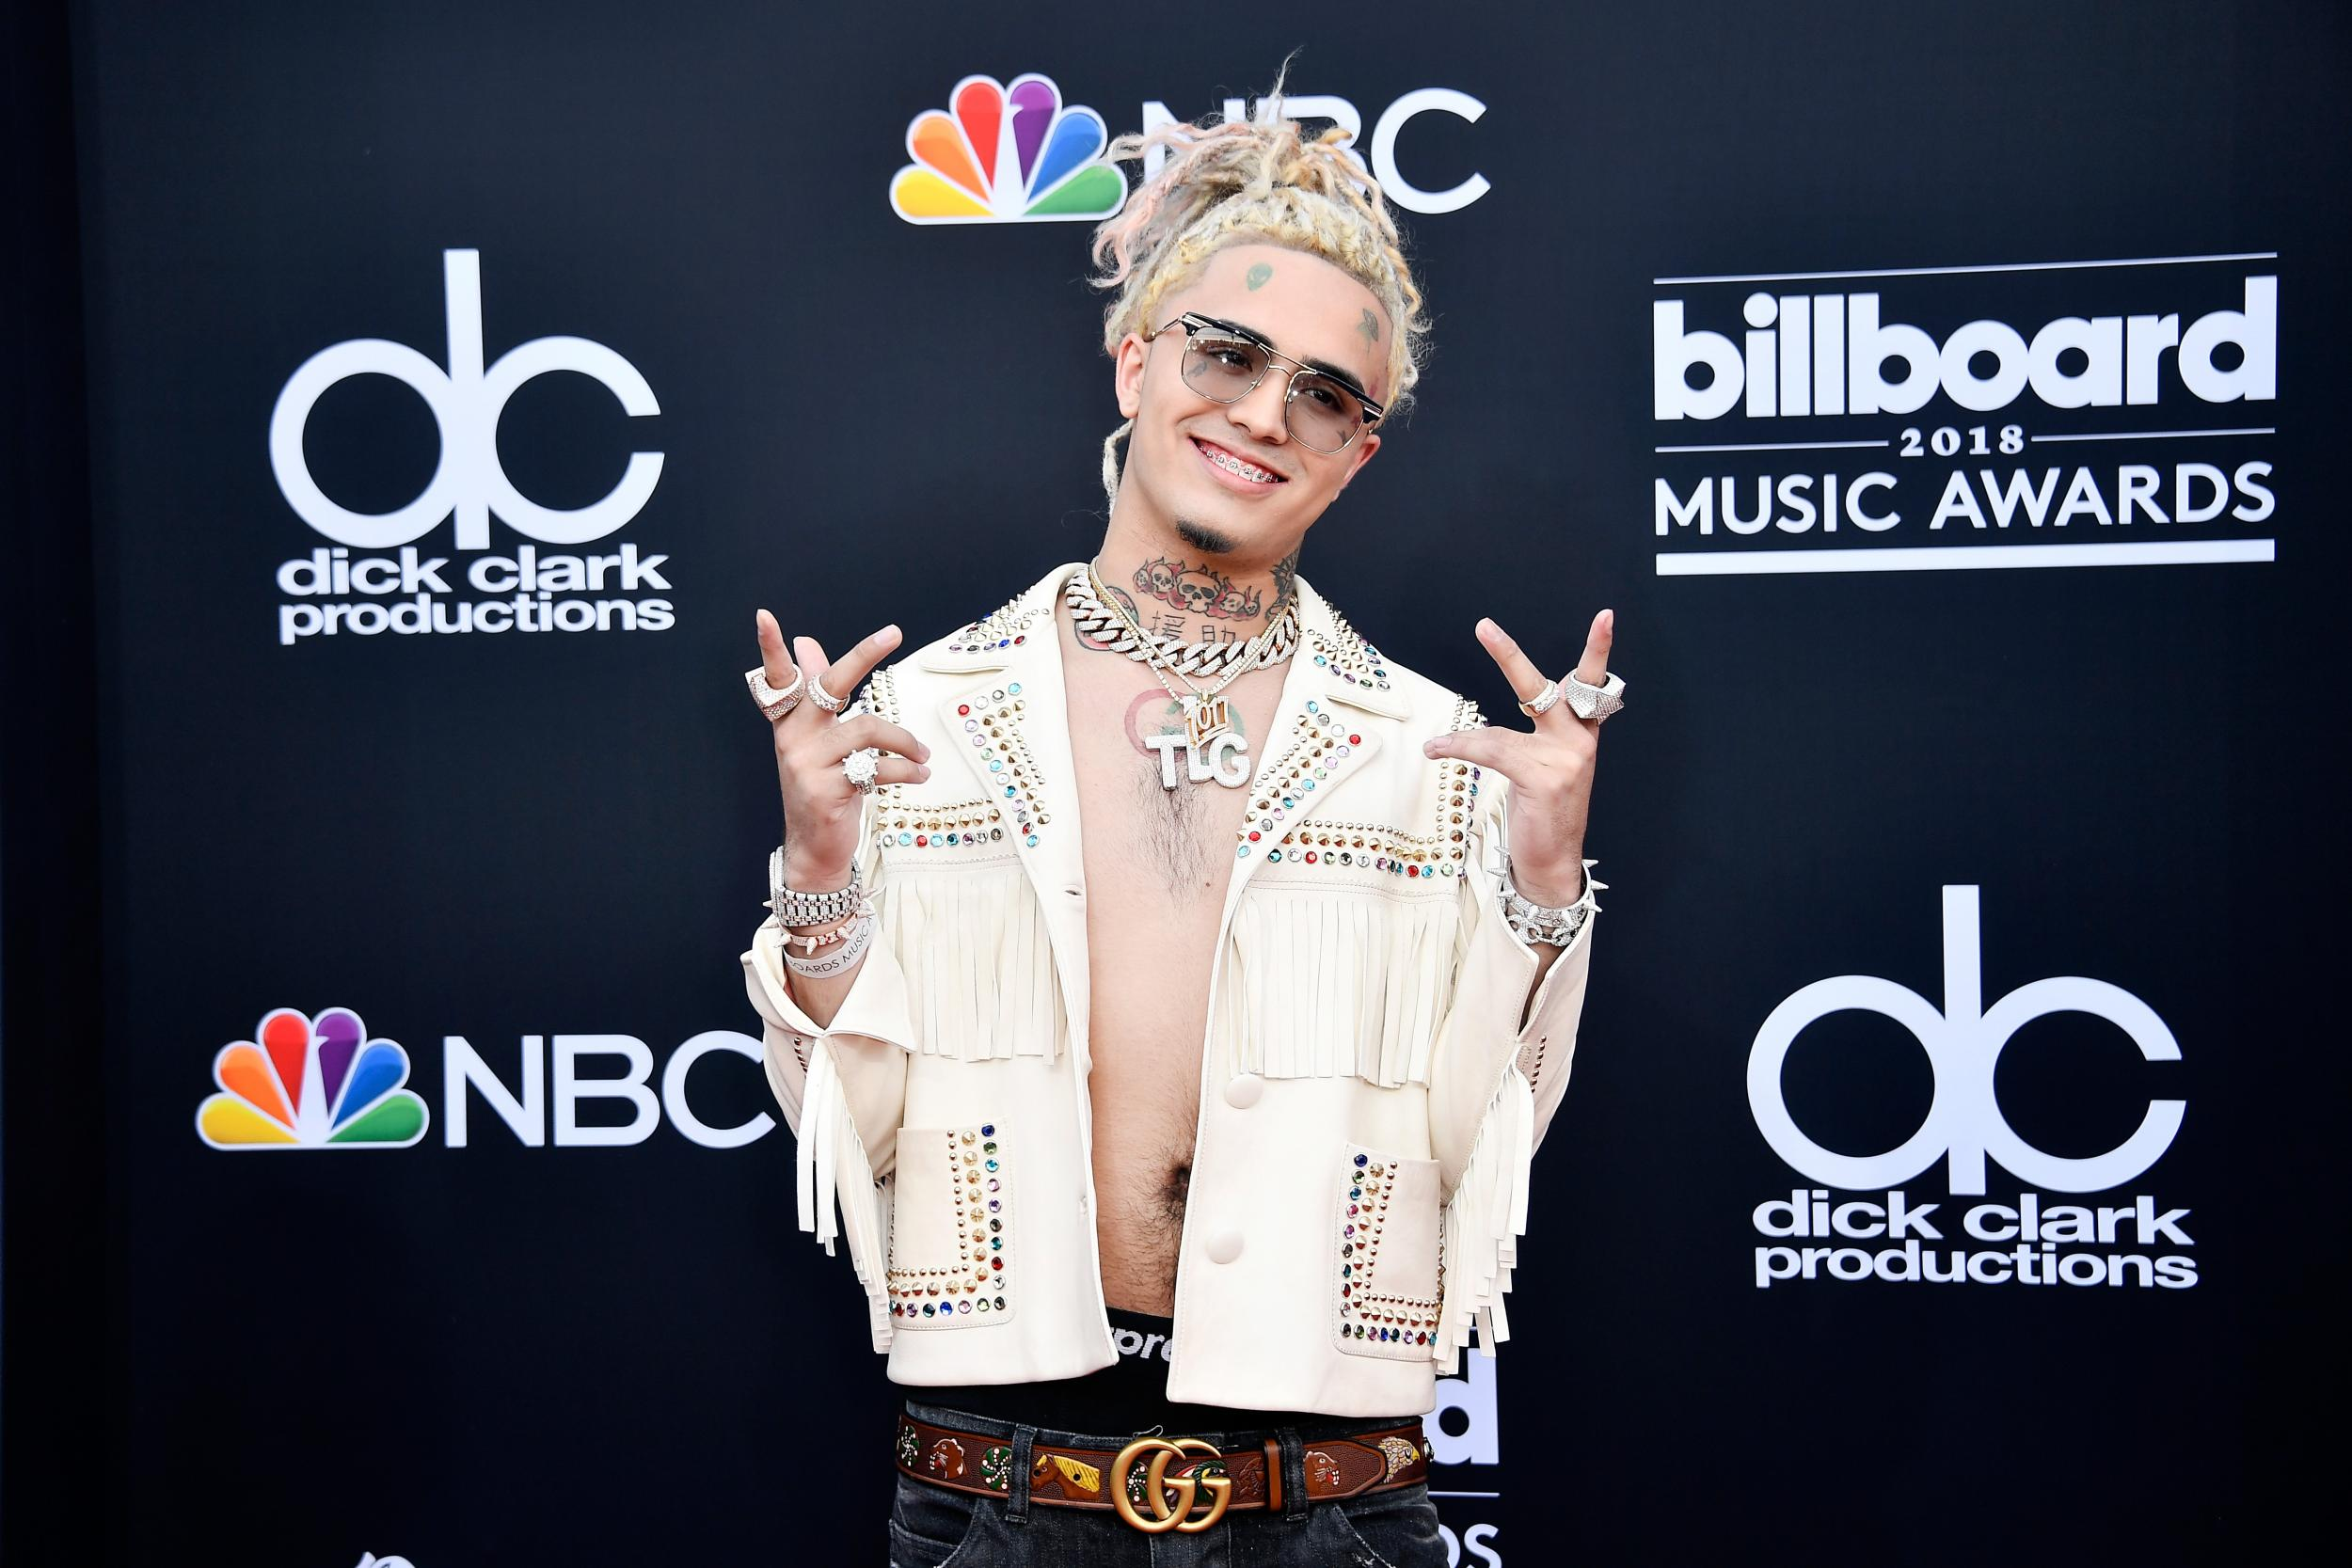 Rapper Lil Pump bitten by a snake on set of new music video in shocking footage: 'I hope I don't die'